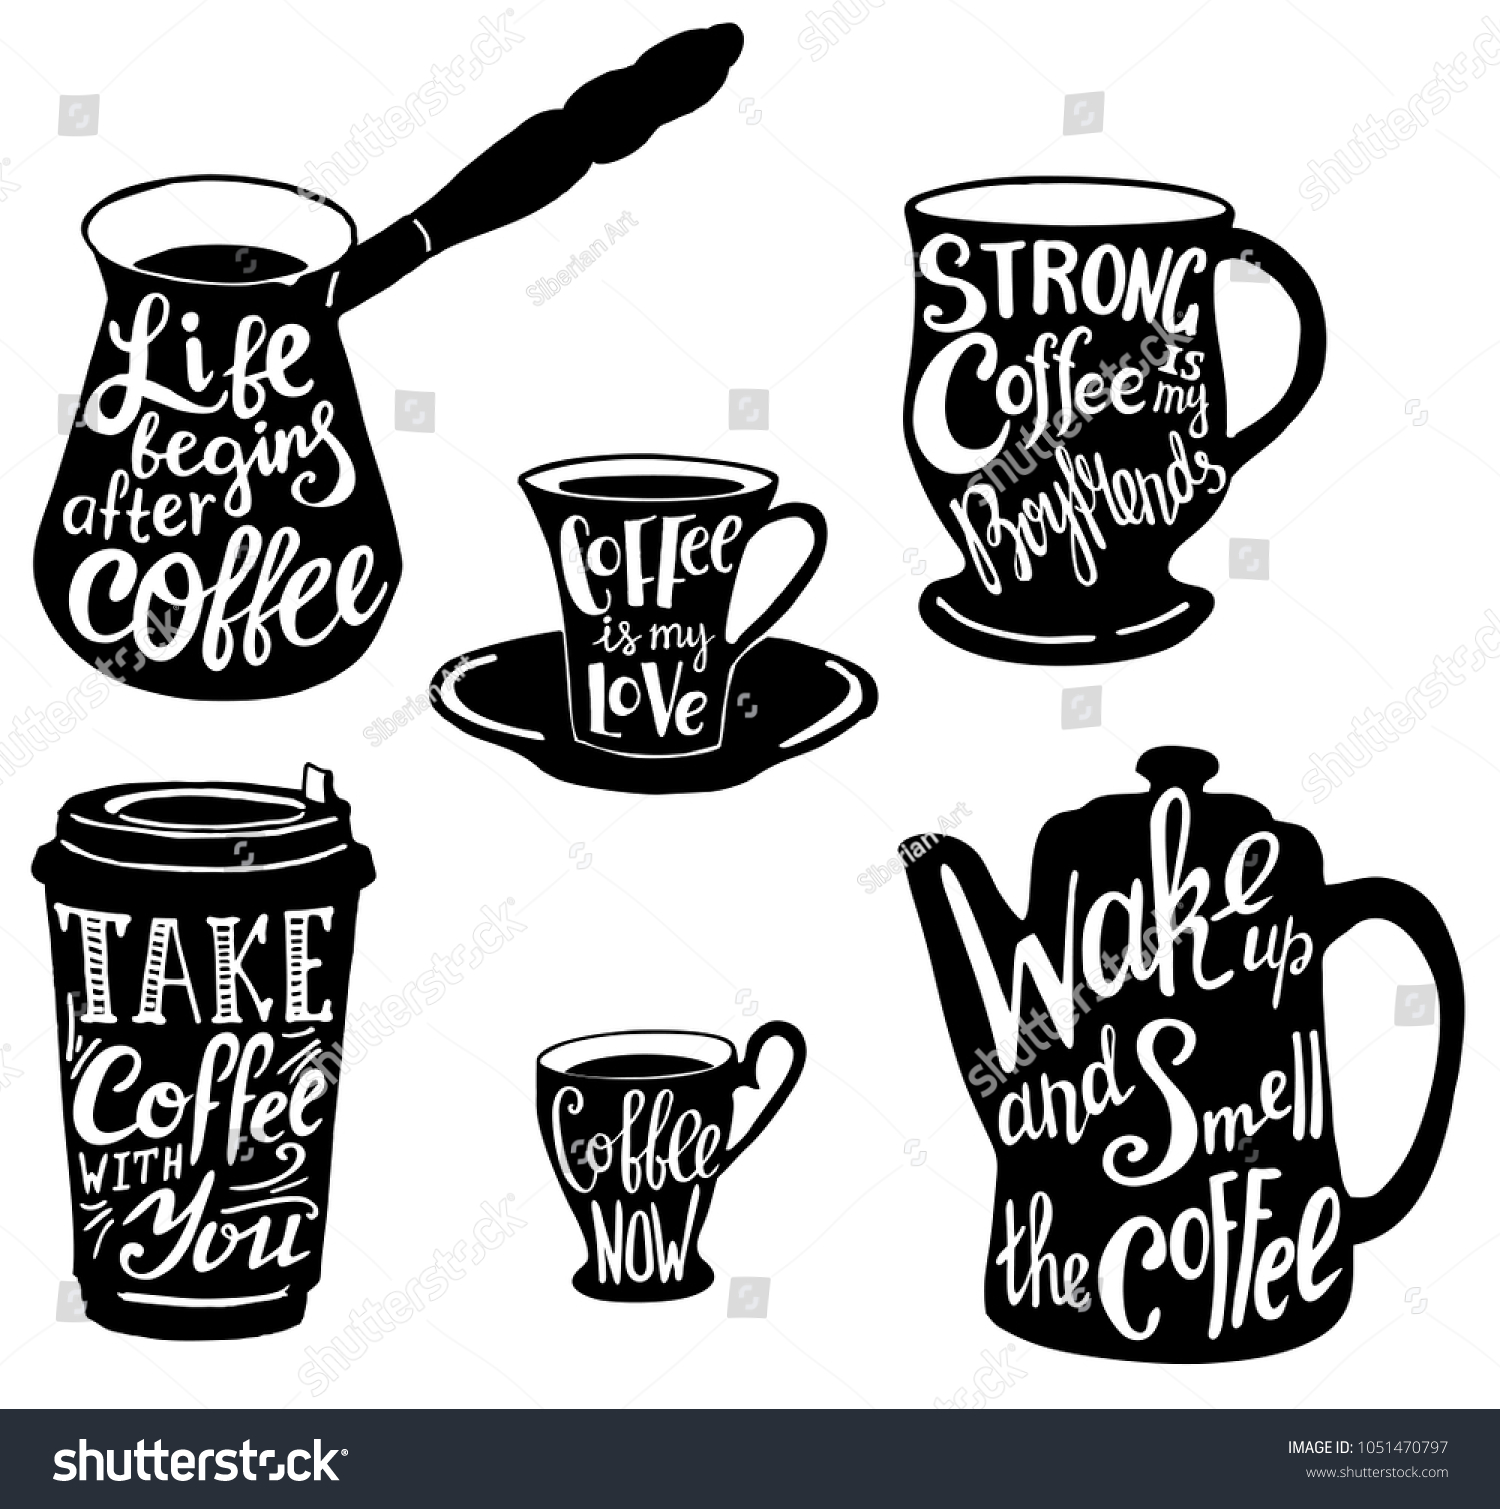 Coffee Set Cute Coffee Quotes Sayings Stock Illustration Royalty